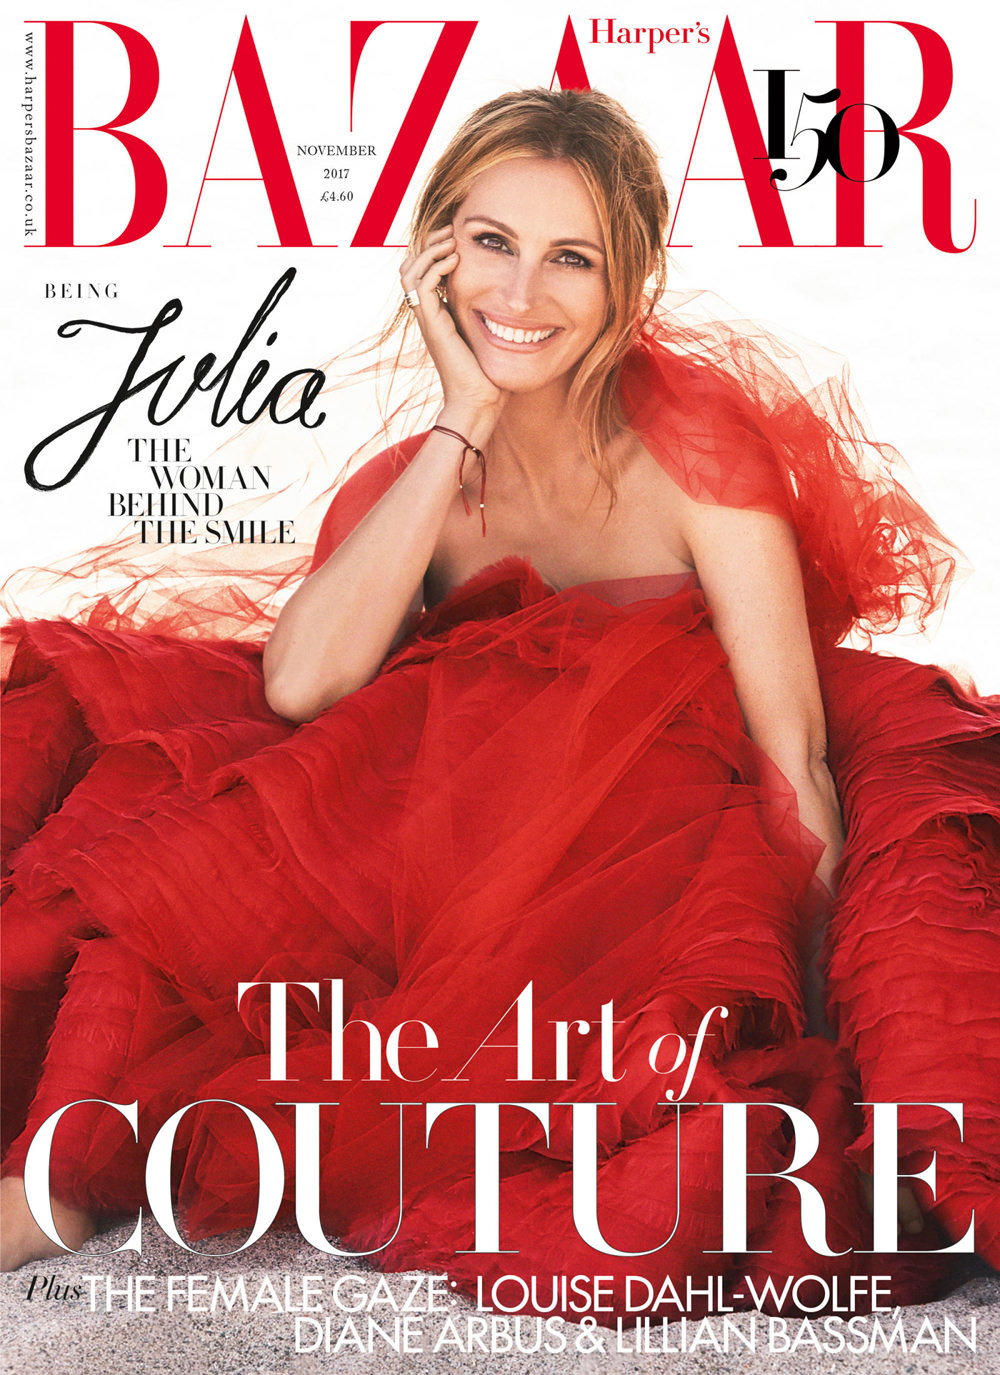 Julia-Roberts-Harpers-Bazaar-November-2017-Issue-Fashion-Tom-Lorenzo-Site-1.jpg